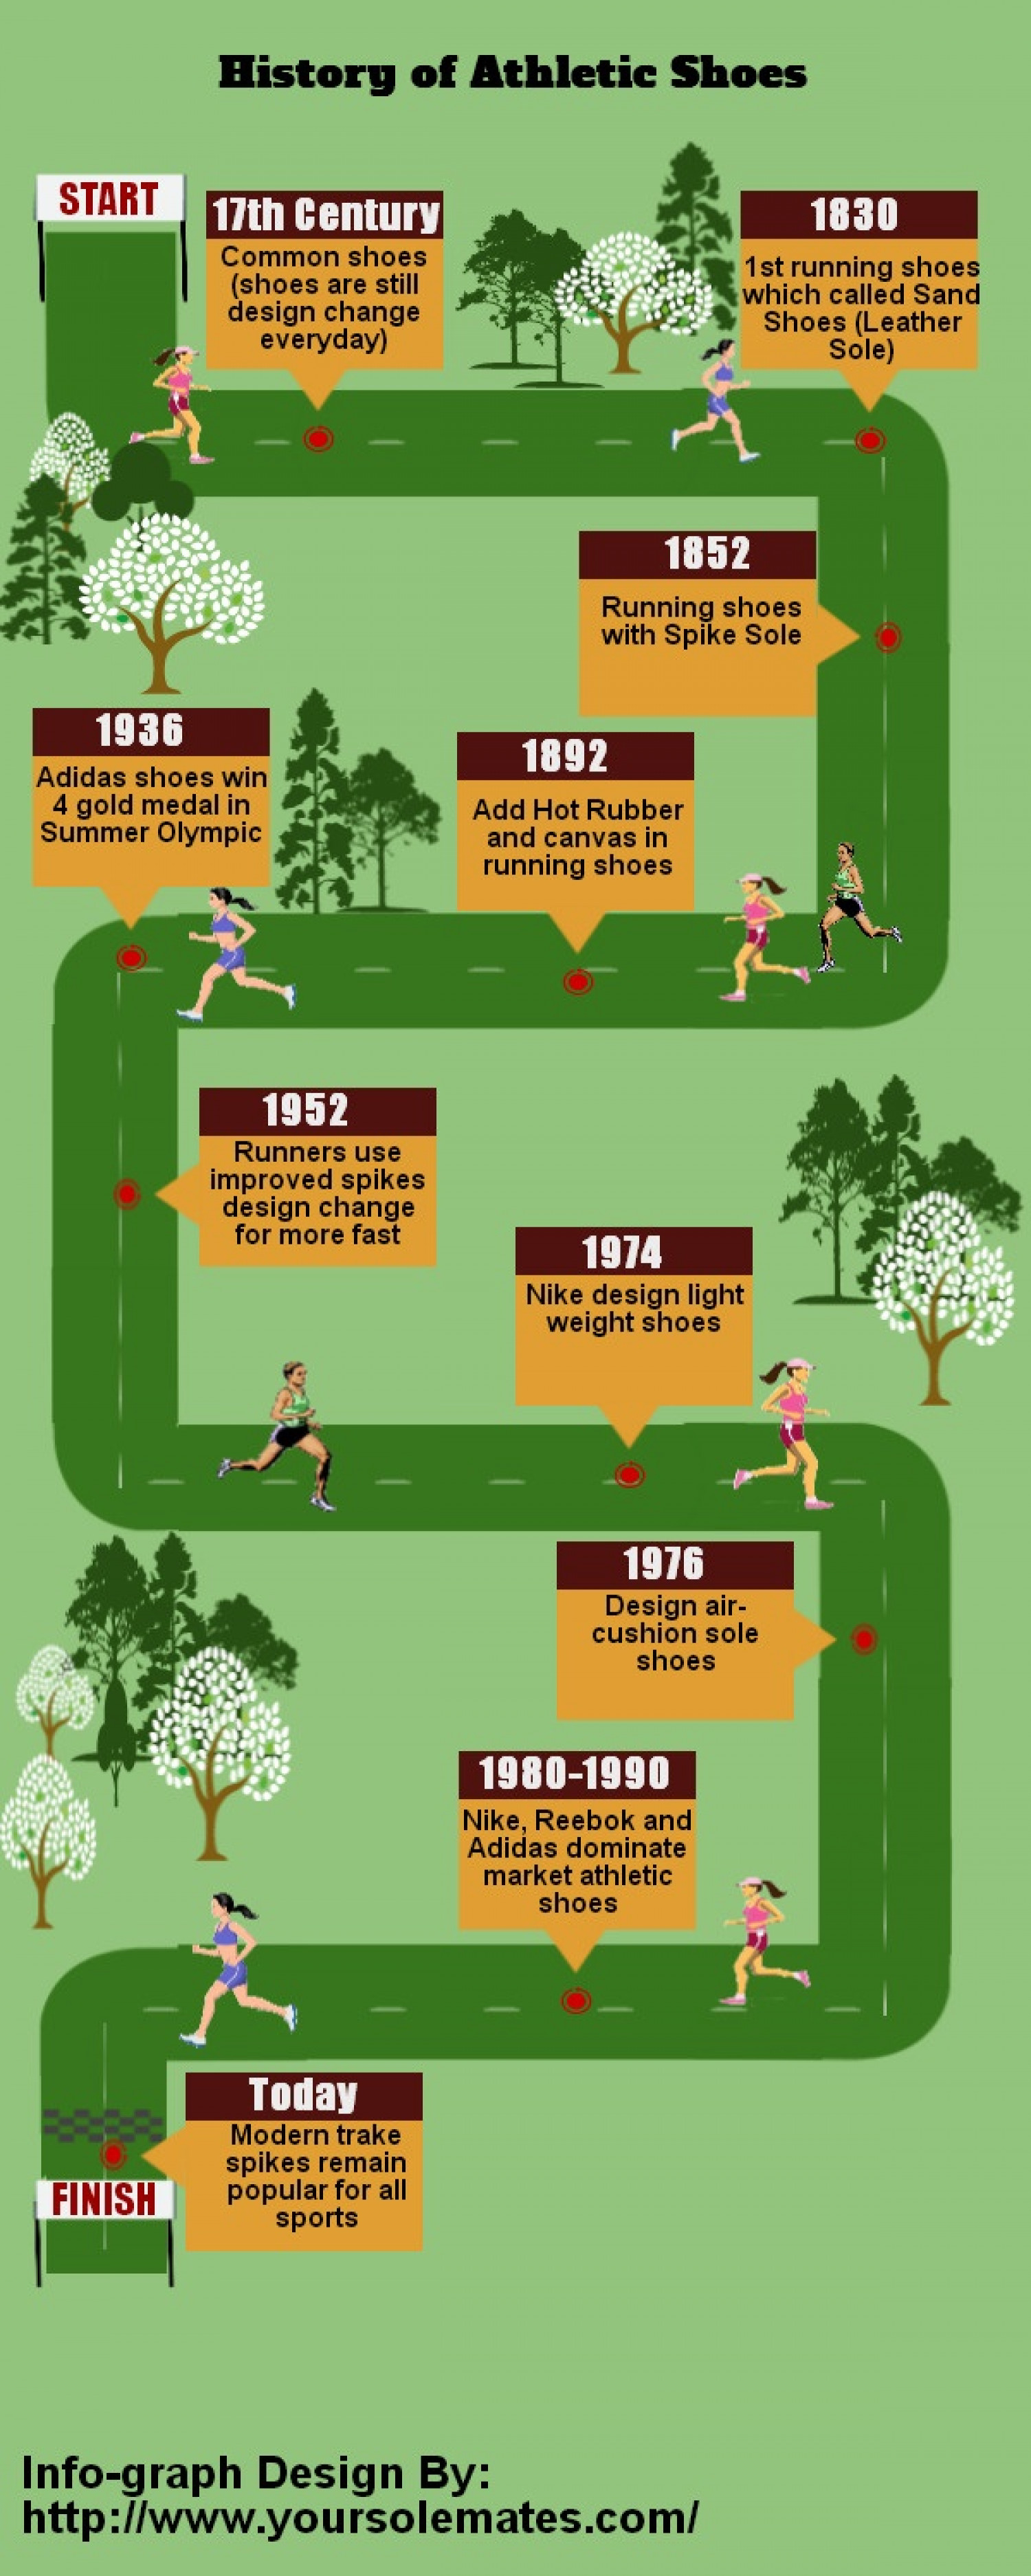 History of Athletic Shoes Infographic